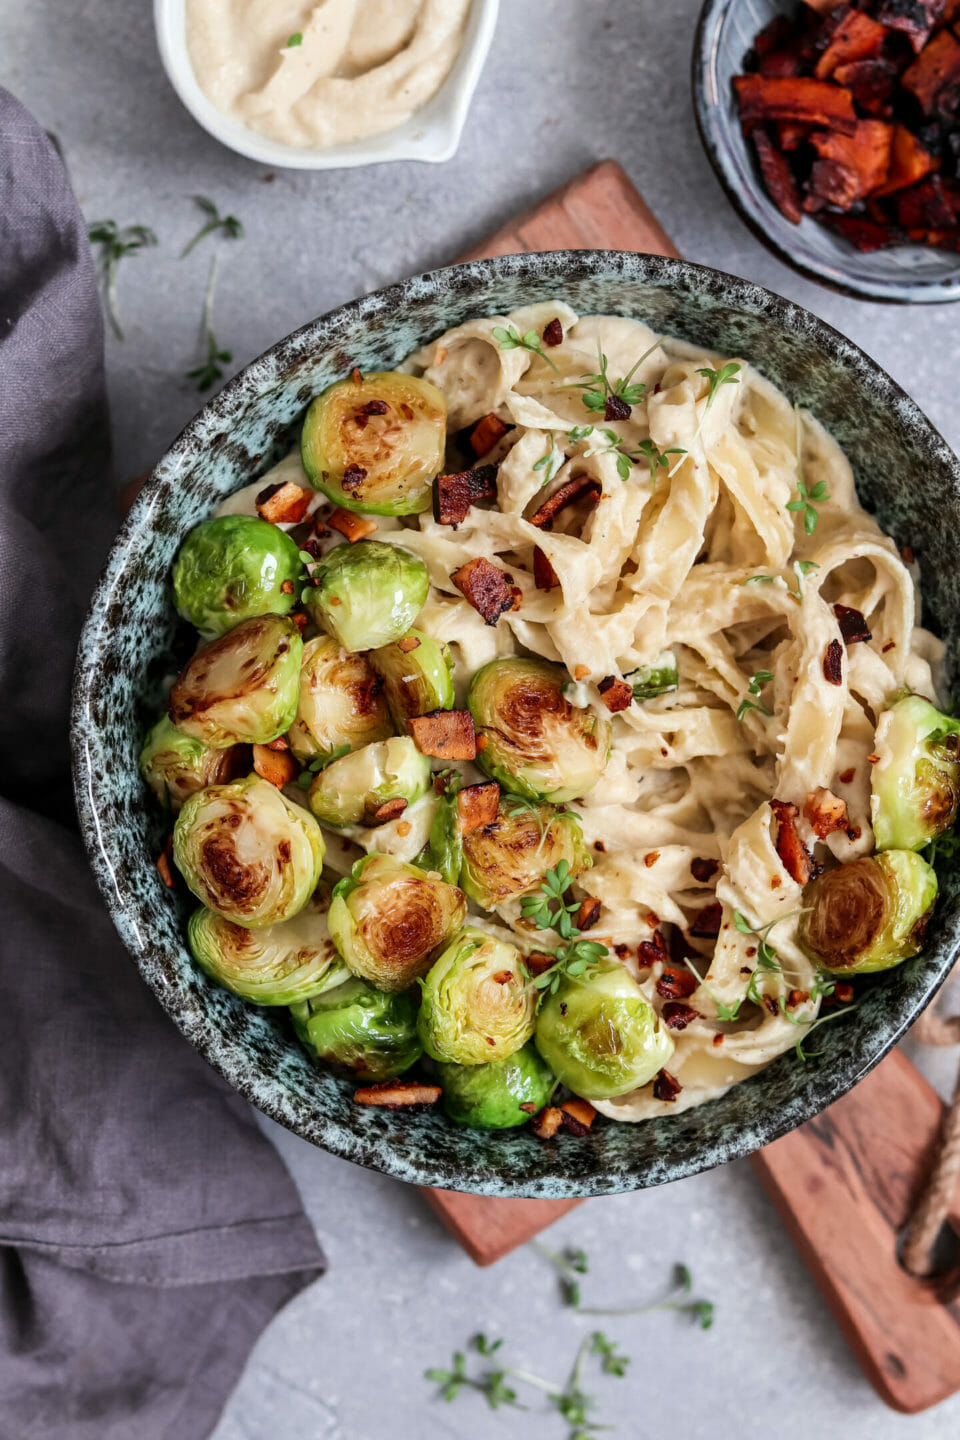 Vegan Fettuccine Alfredo with pan fried Brussel sprouts and coconut bacon.